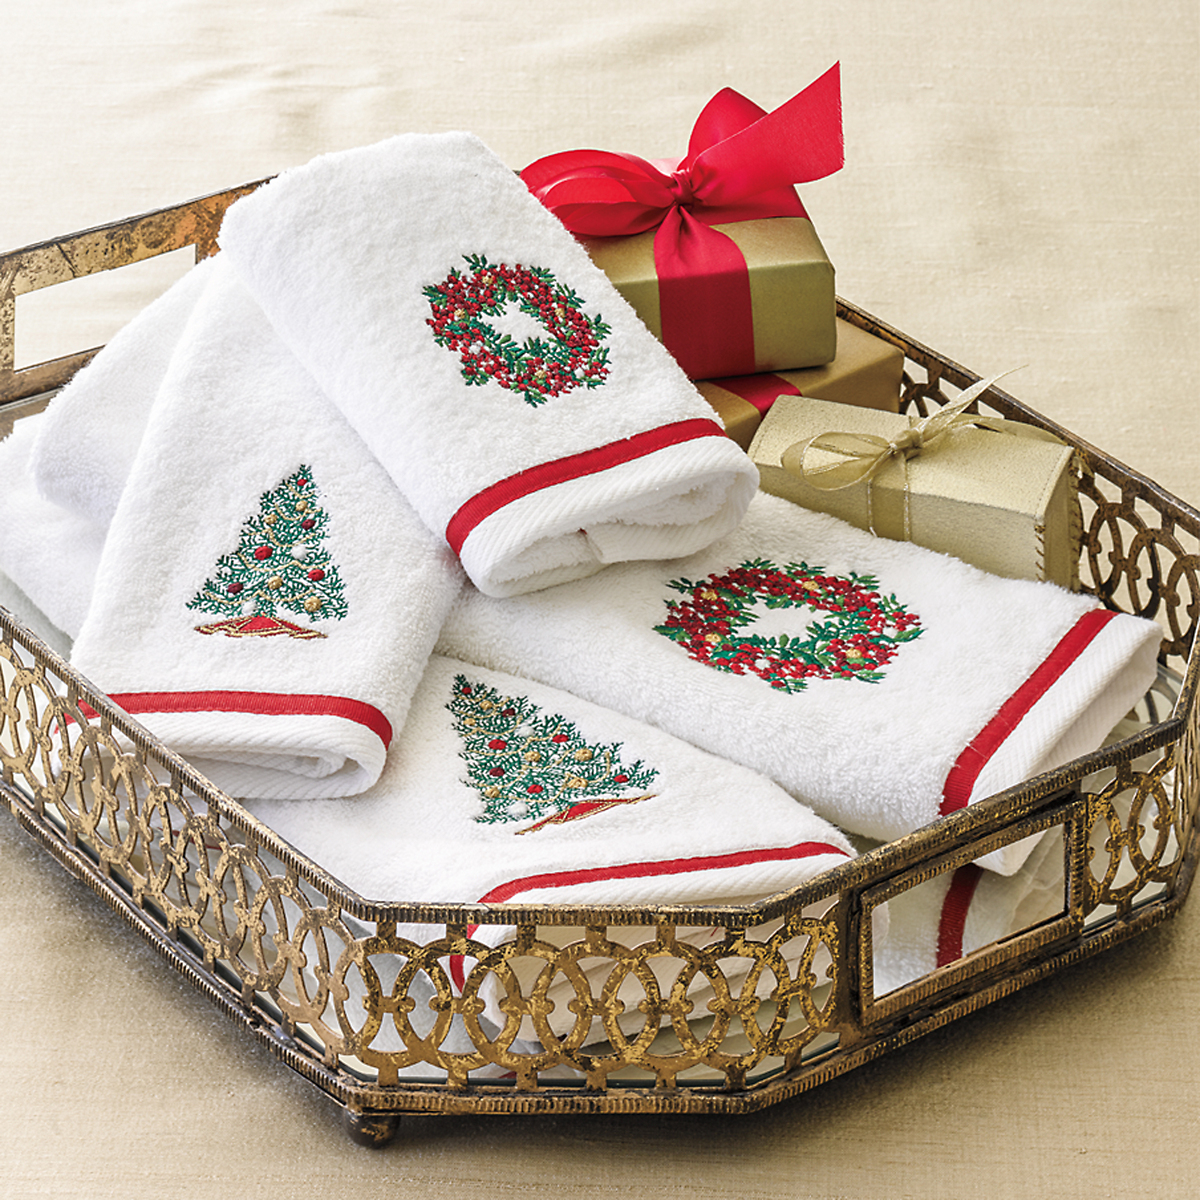 Holiday Guest Towels | Gump's